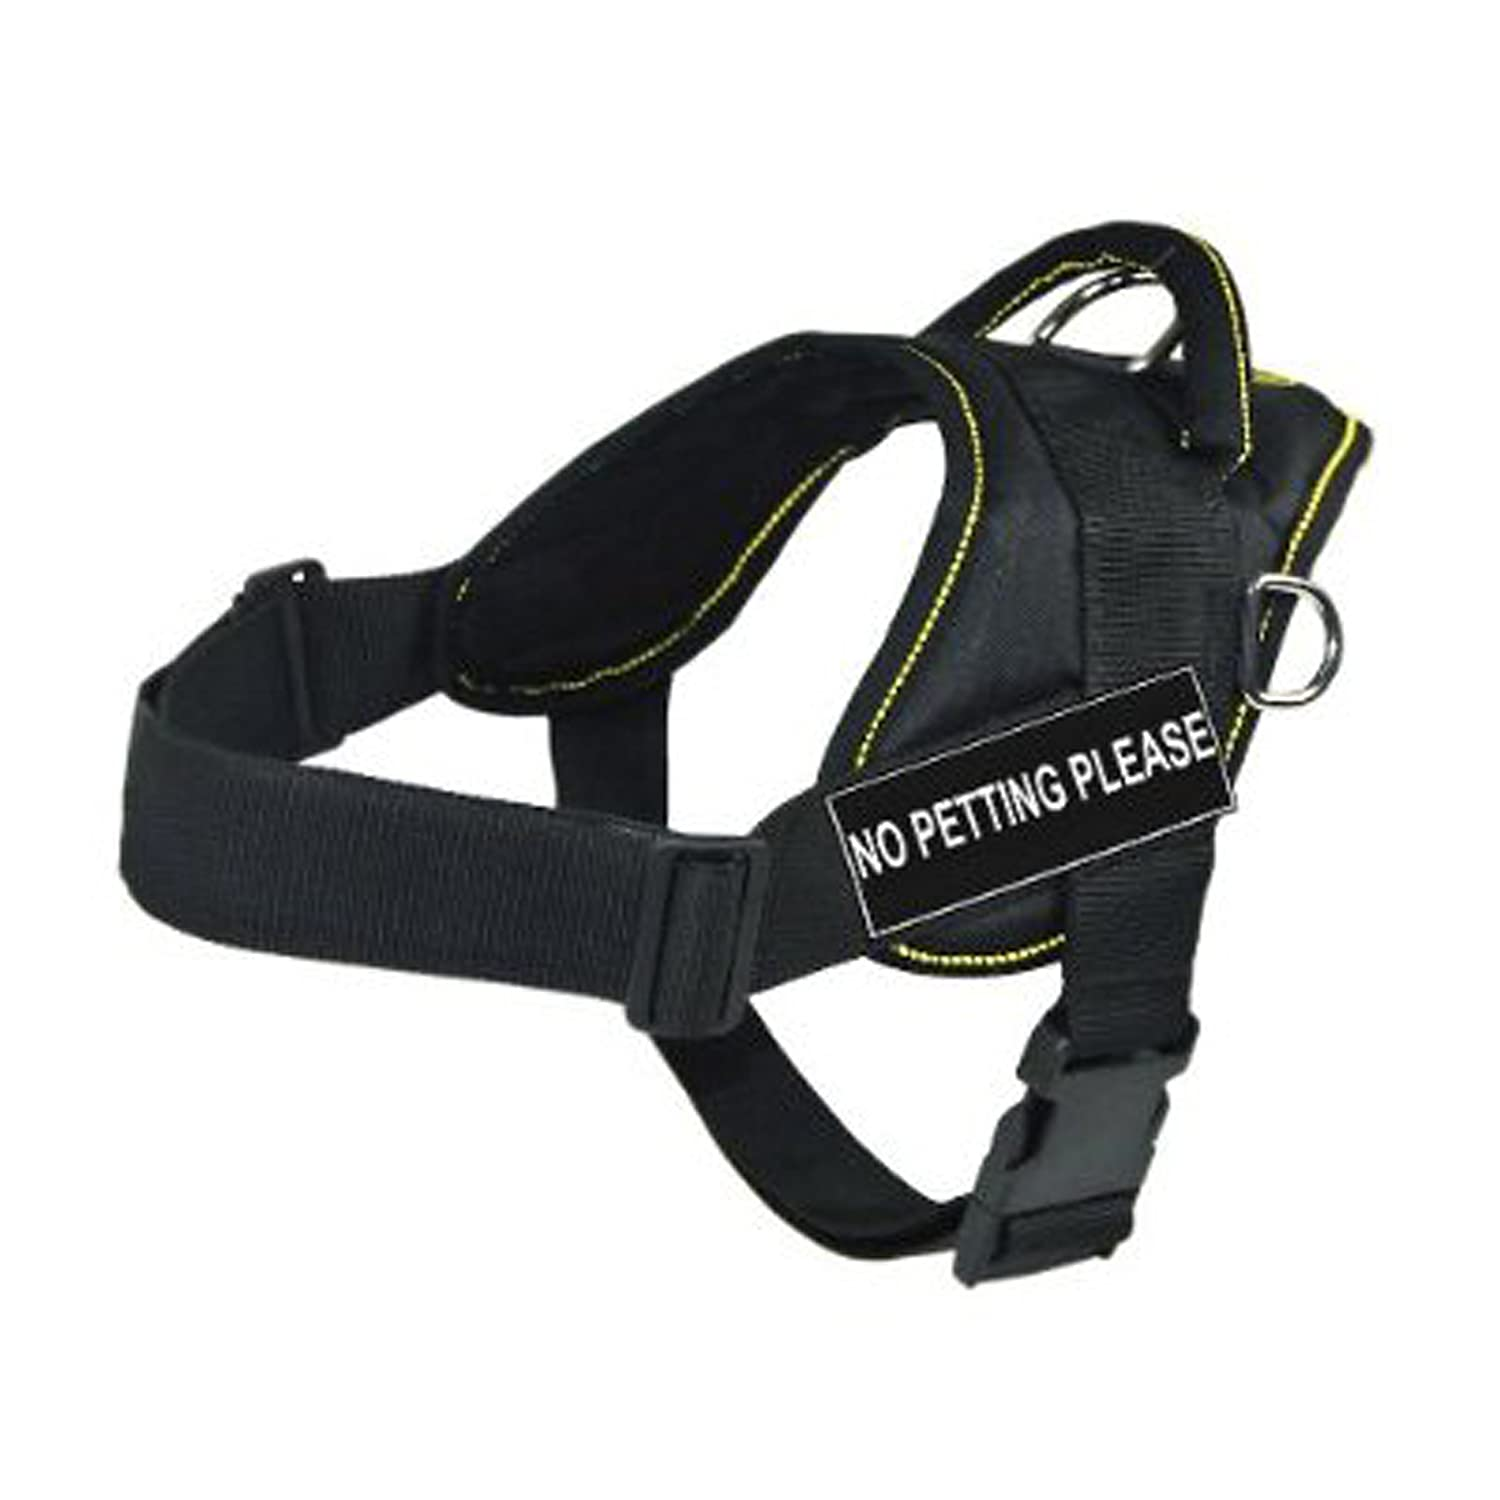 Dean & Tyler Fun Works Harness, No Petting Please, Black With Yellow Trim, Medium Fits Girth Size  71cm to 86cm